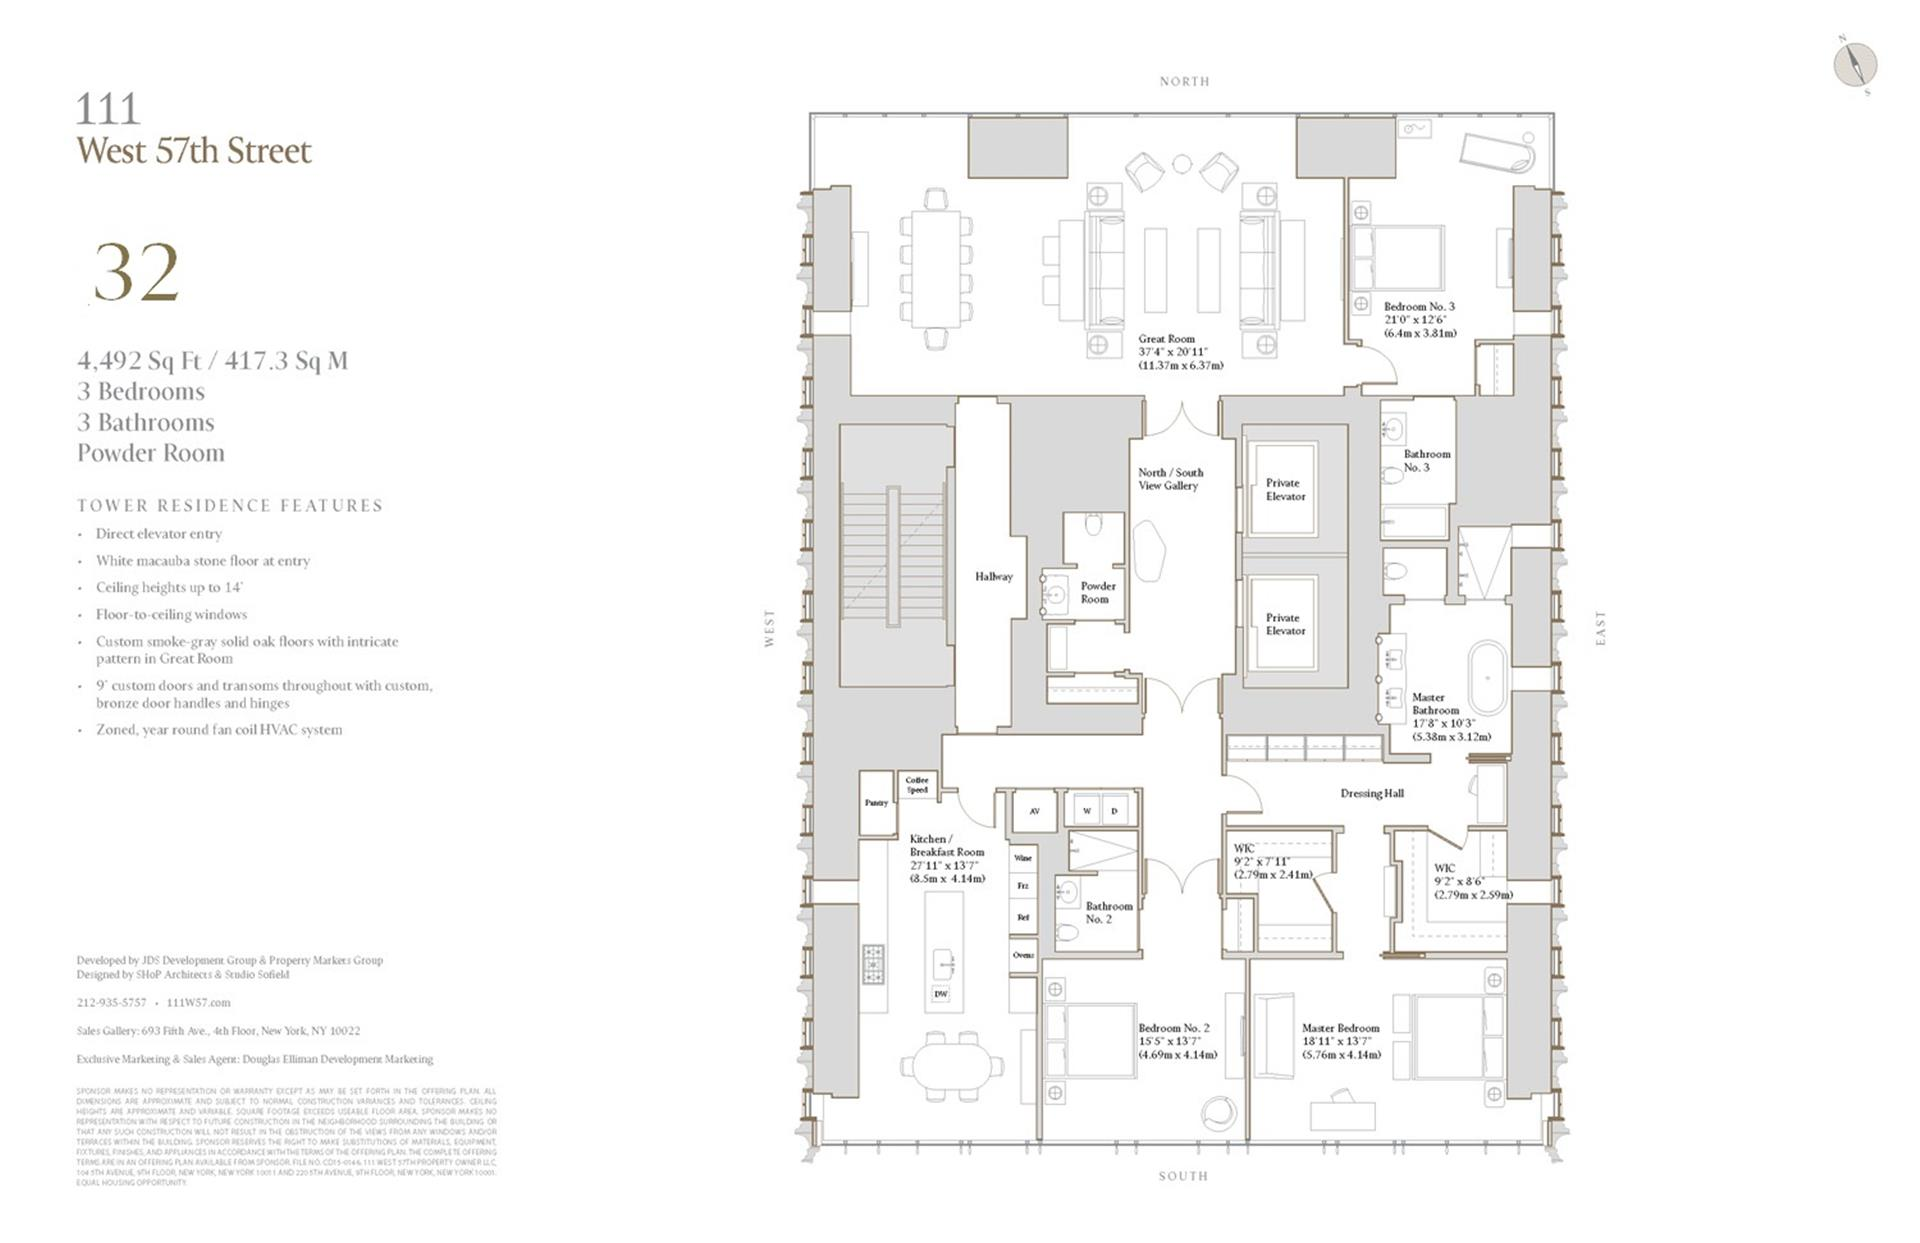 Floor plan of 111 West 57th St, 32 - Central Park South, New York